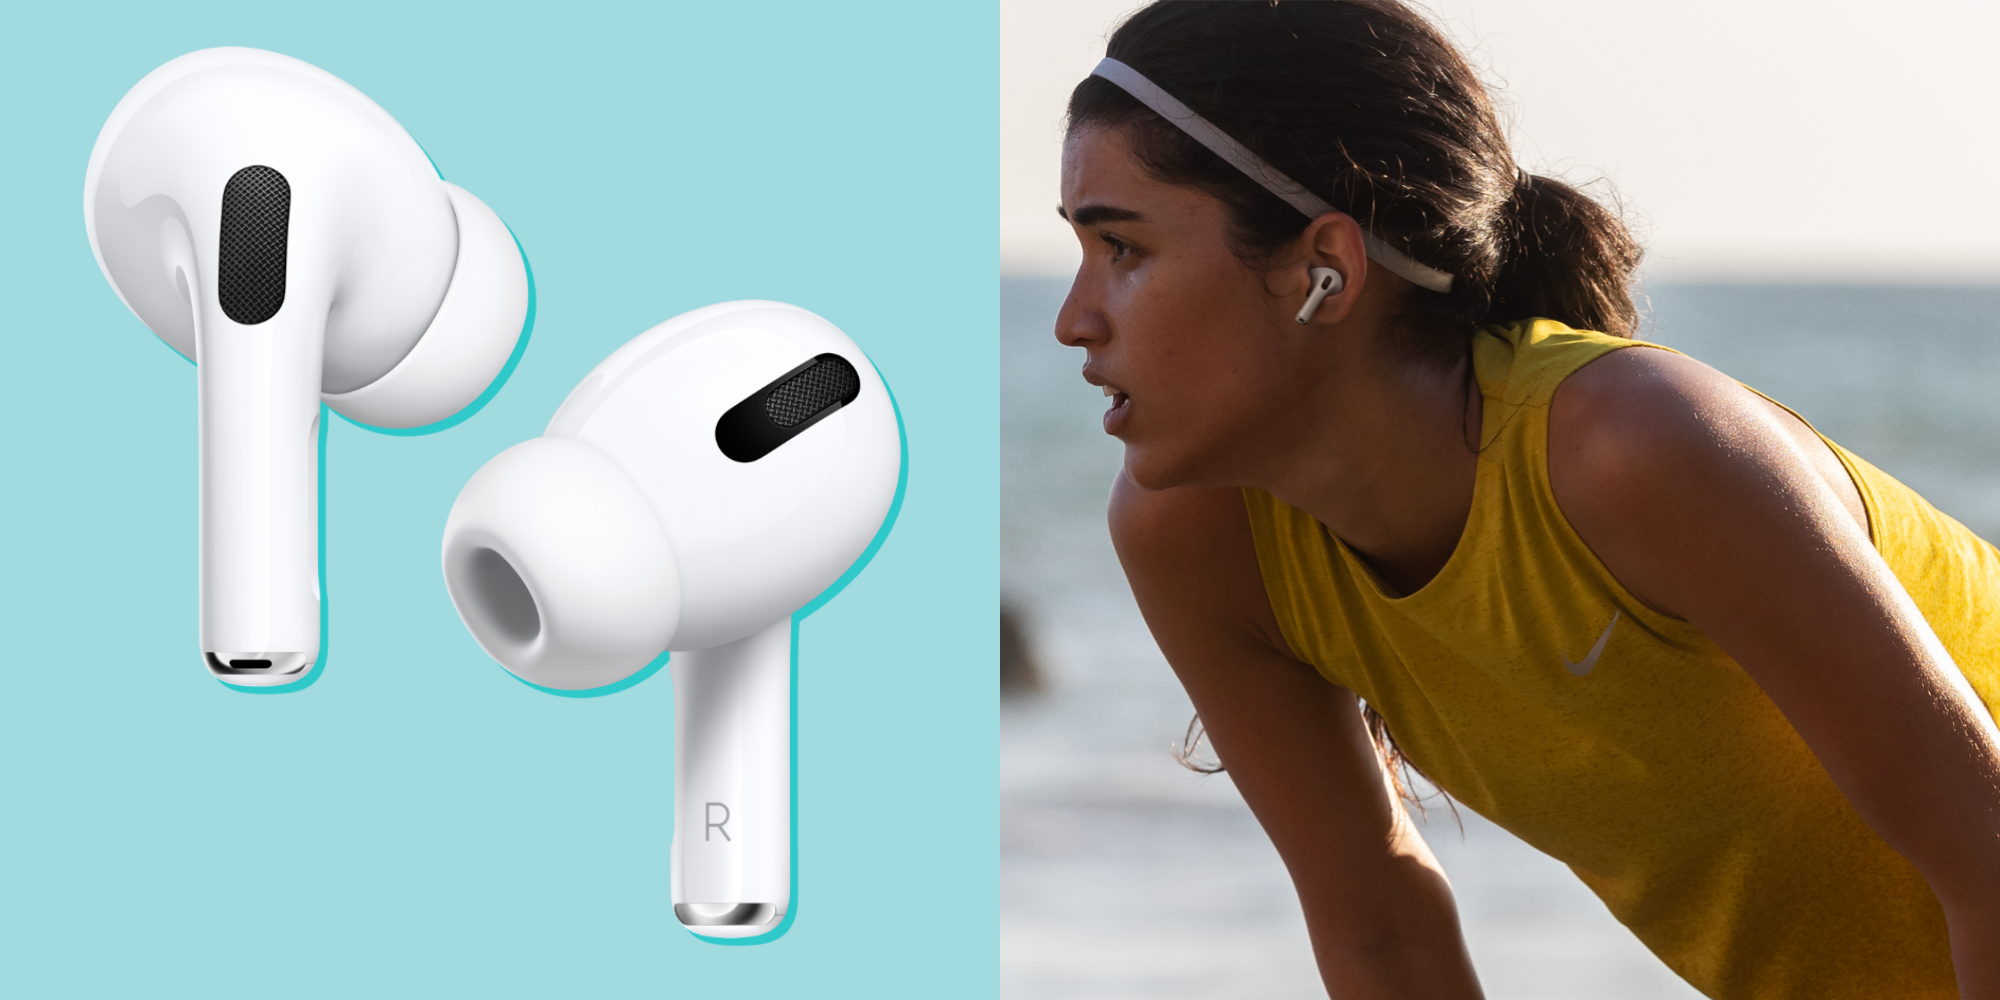 The New Airpods Pro Solved Two Major Problems For Me This Week